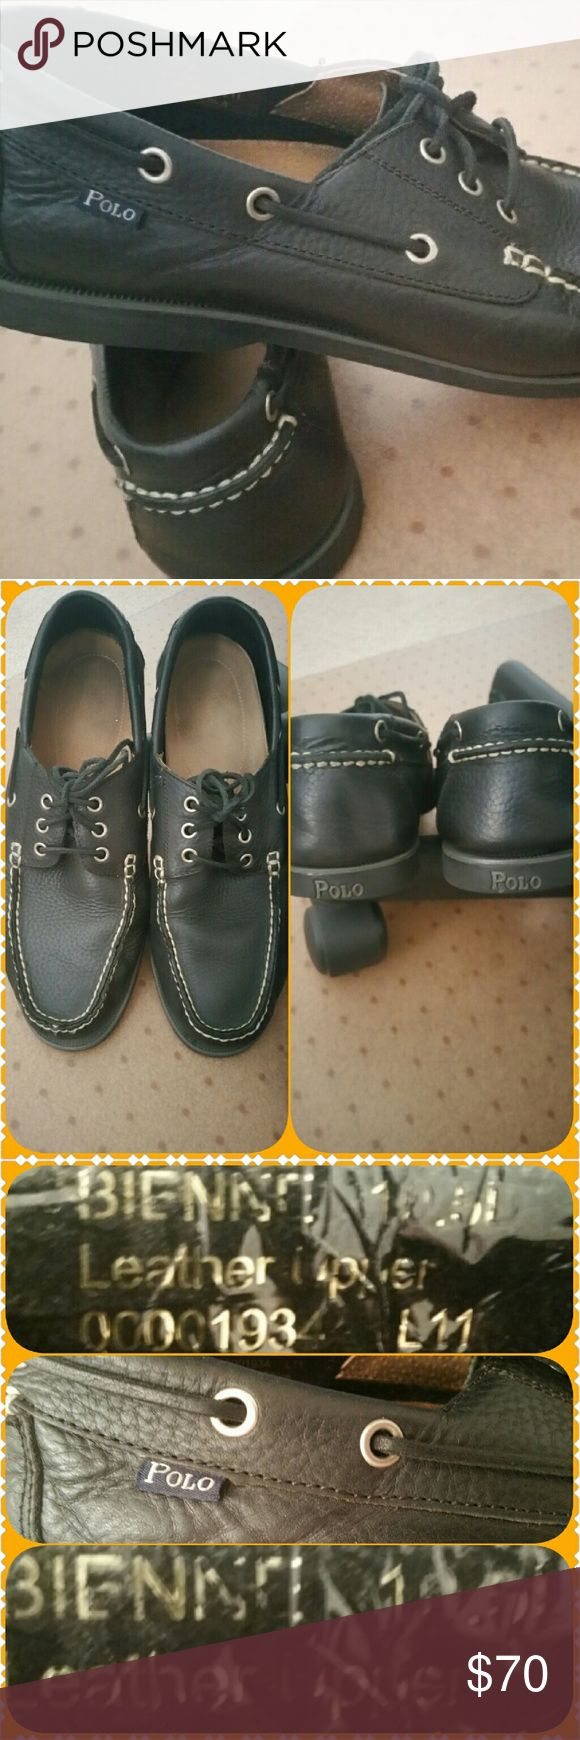 Men Polo Ralph Lauren Boat Shoe Leather upper, leather laces and side lacing detail. Rubber soles. Gently used but in great condition. Unfortunately,  I don't have the original box. Polo by Ralph Lauren Shoes Boat Shoes